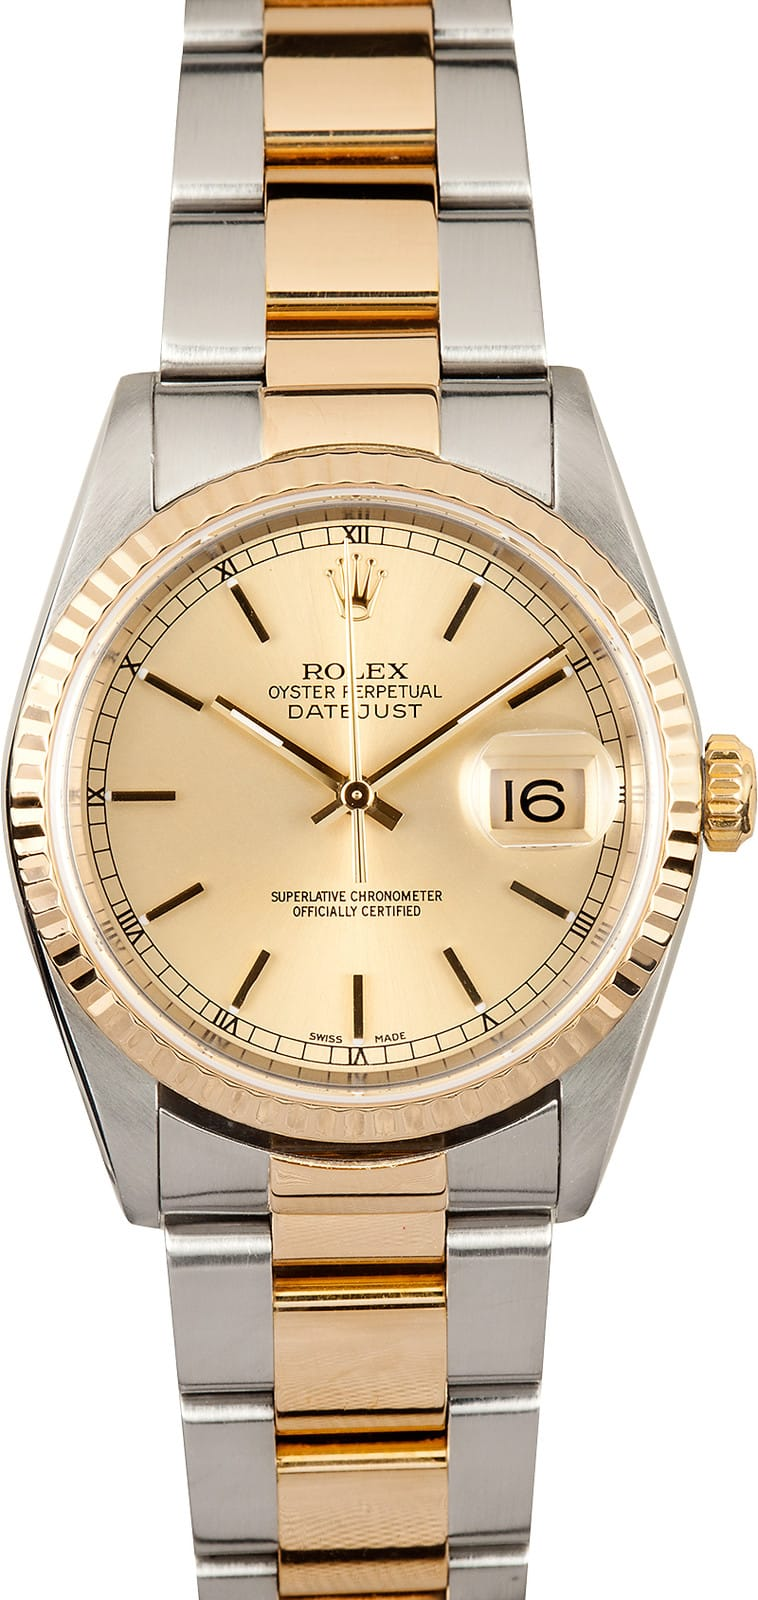 Used Rolex Submariner >> 109246 Mens' Rolex Datejust Oyster 16233 - Save Up To 50%